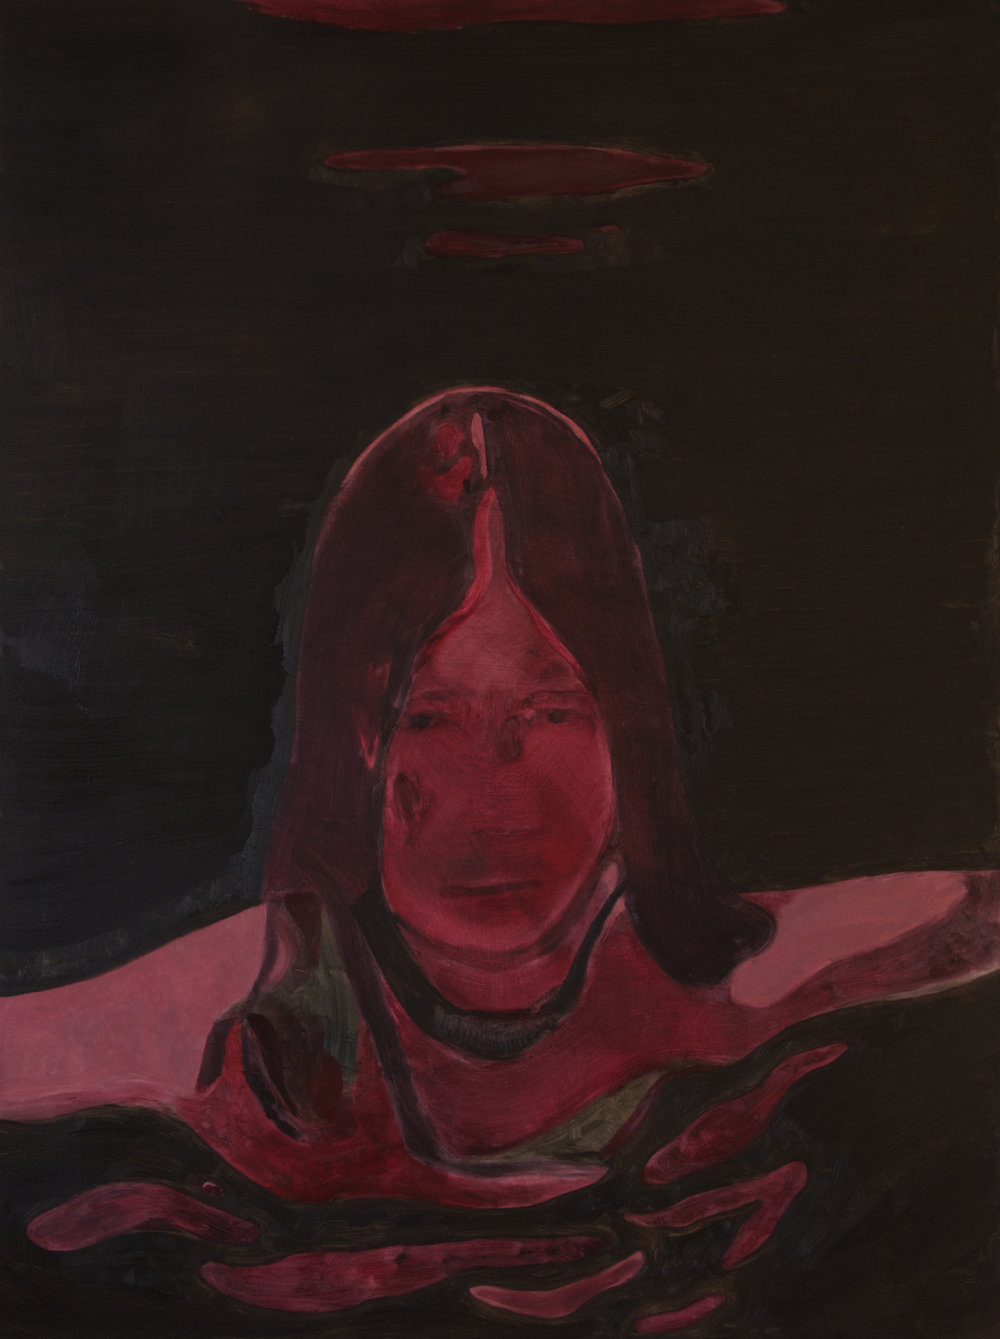 Anthony Cudahy, Red Moon 2, 2015, oil on canvas, 48 x 36 in.